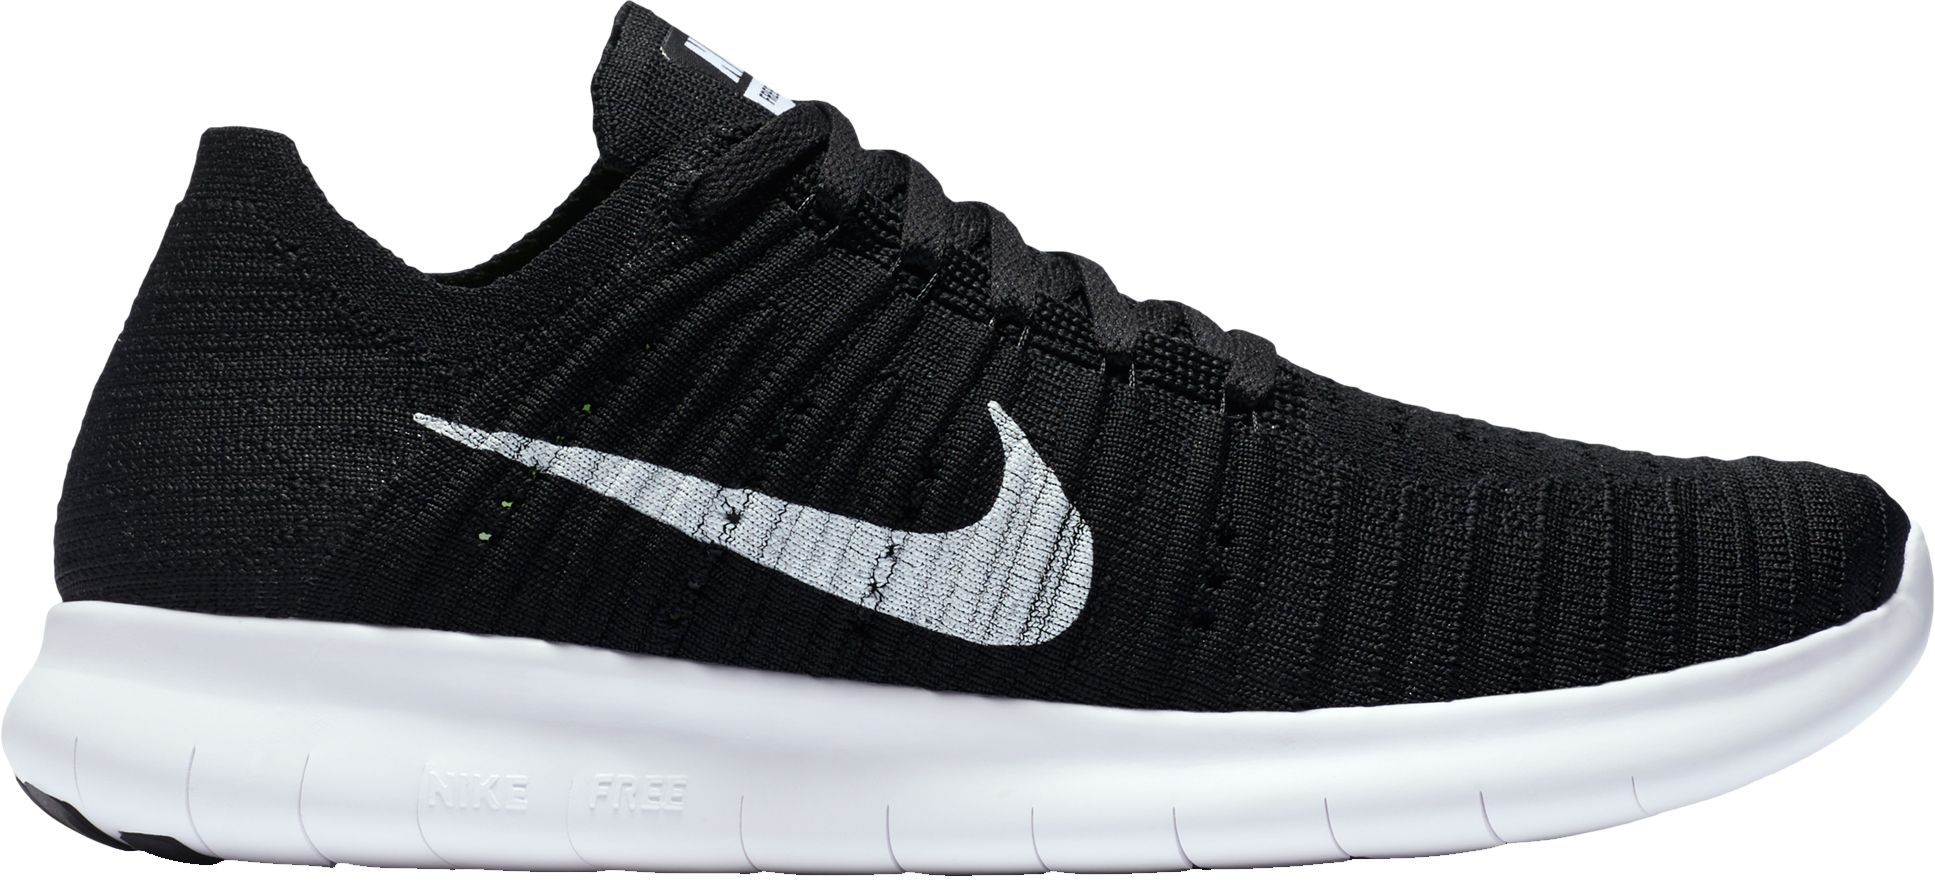 nike knit shoes